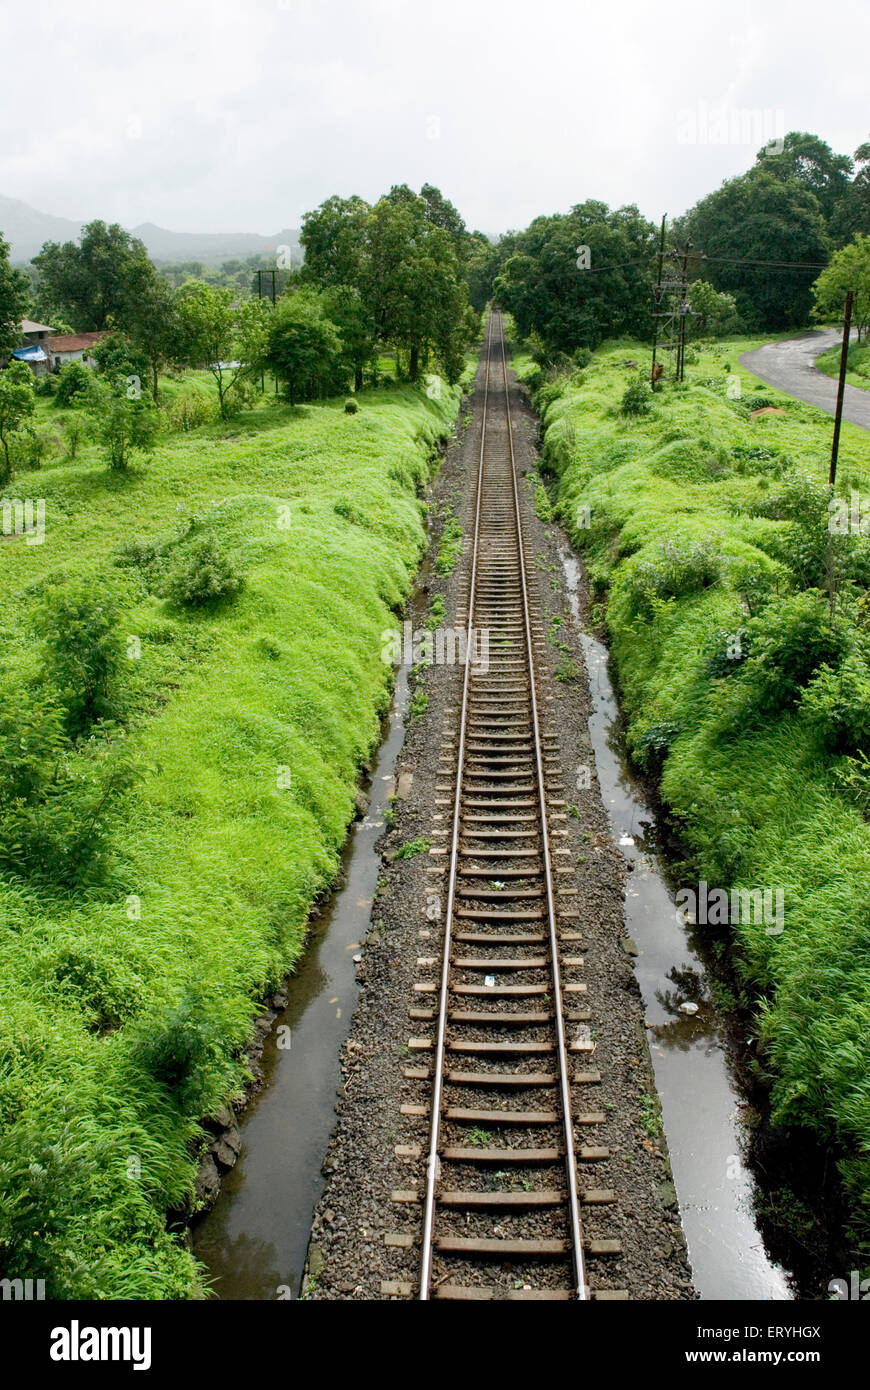 Railway iron tracks ; Raigadh district ; Maharashtra ; India - Stock Image